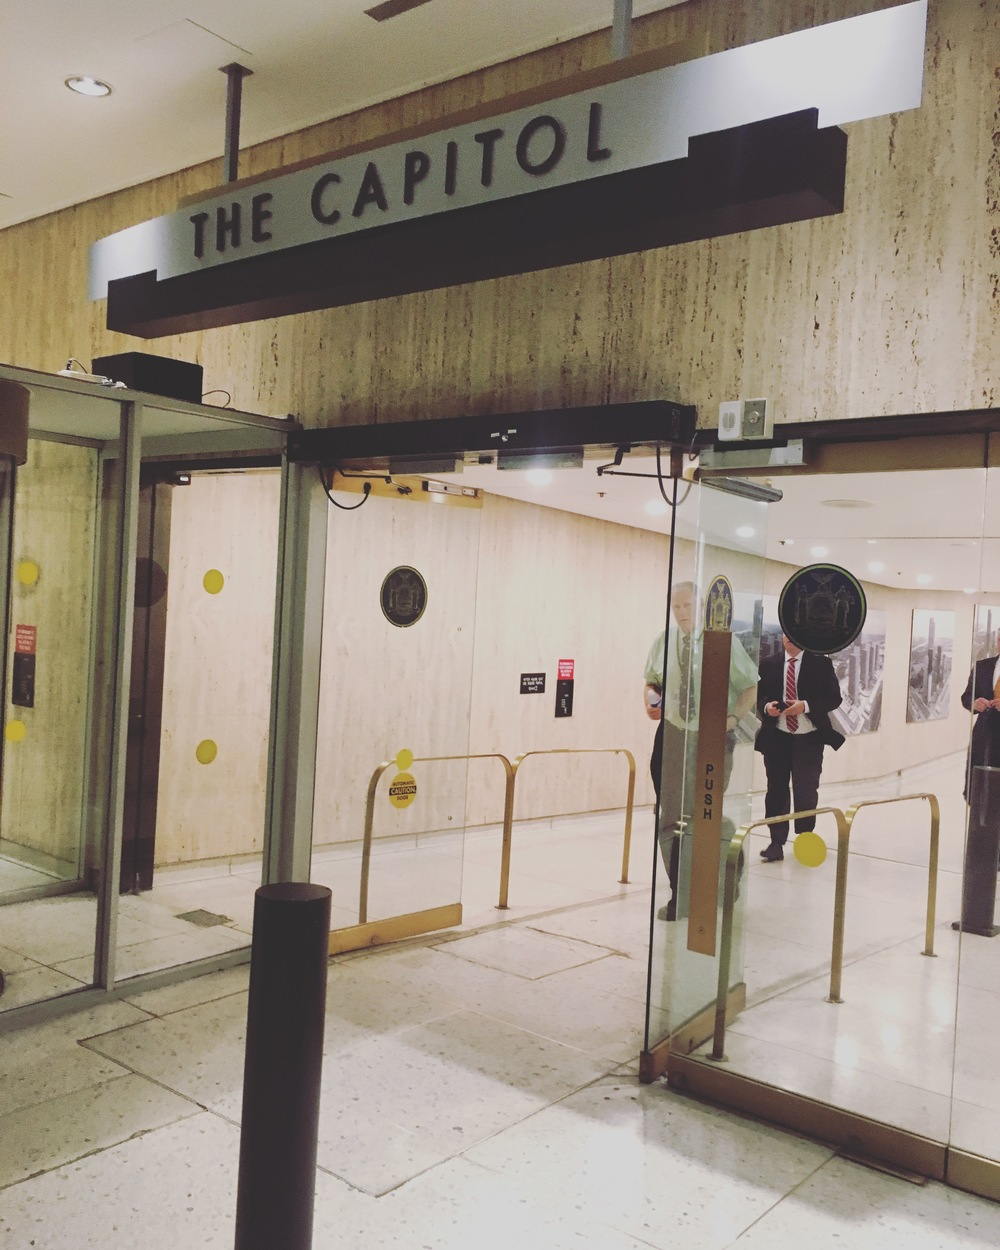 Arriving at the Capitol